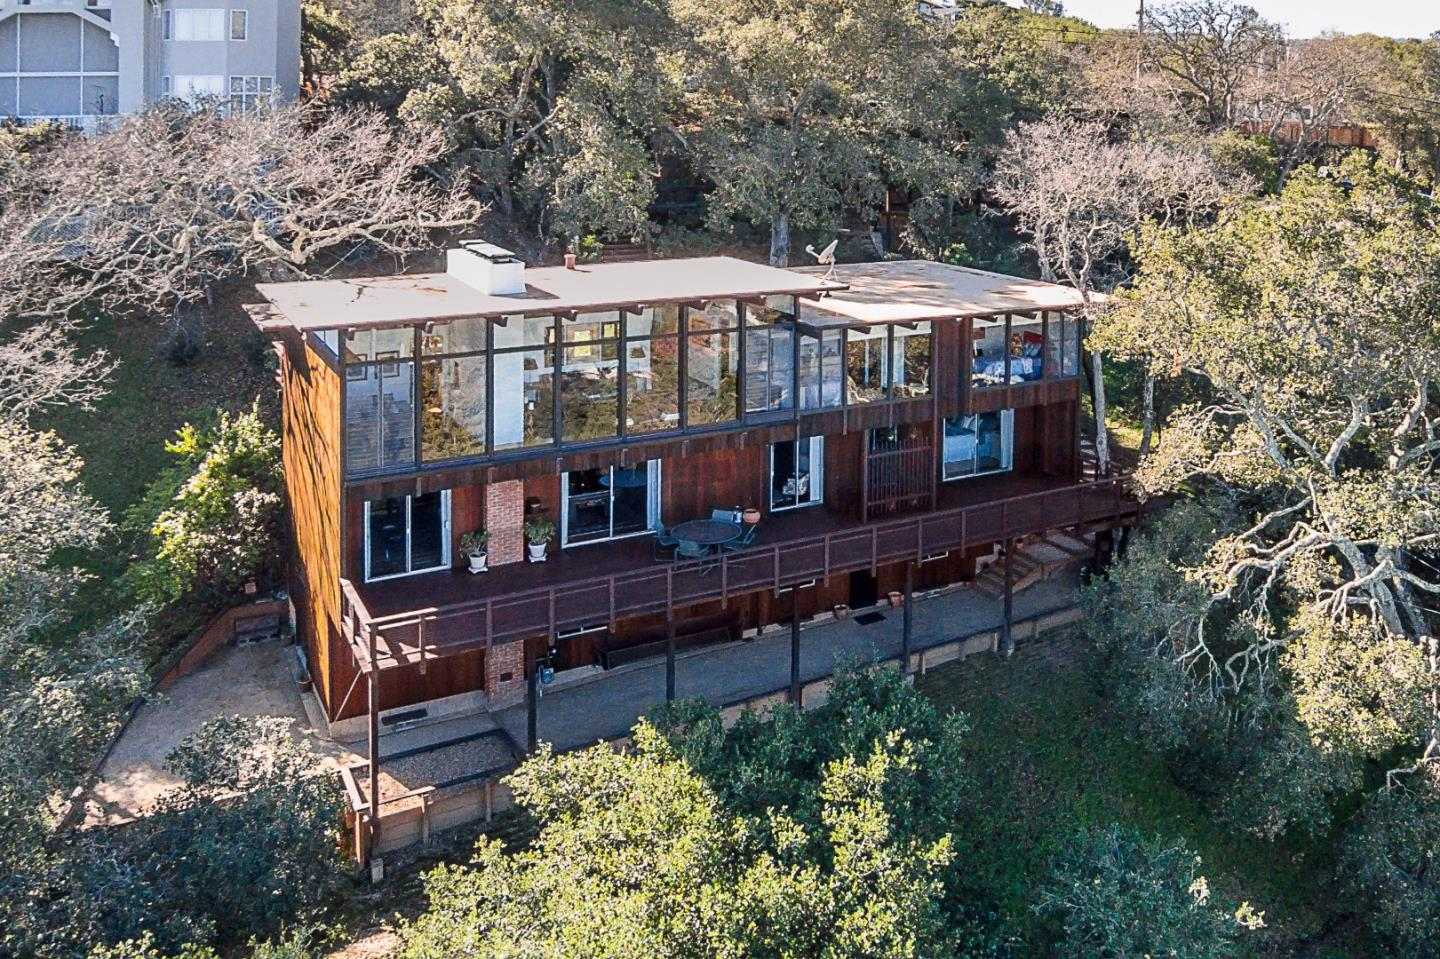 Portola Valley, CA 94028 $2,495,000 www campusrealtorteam